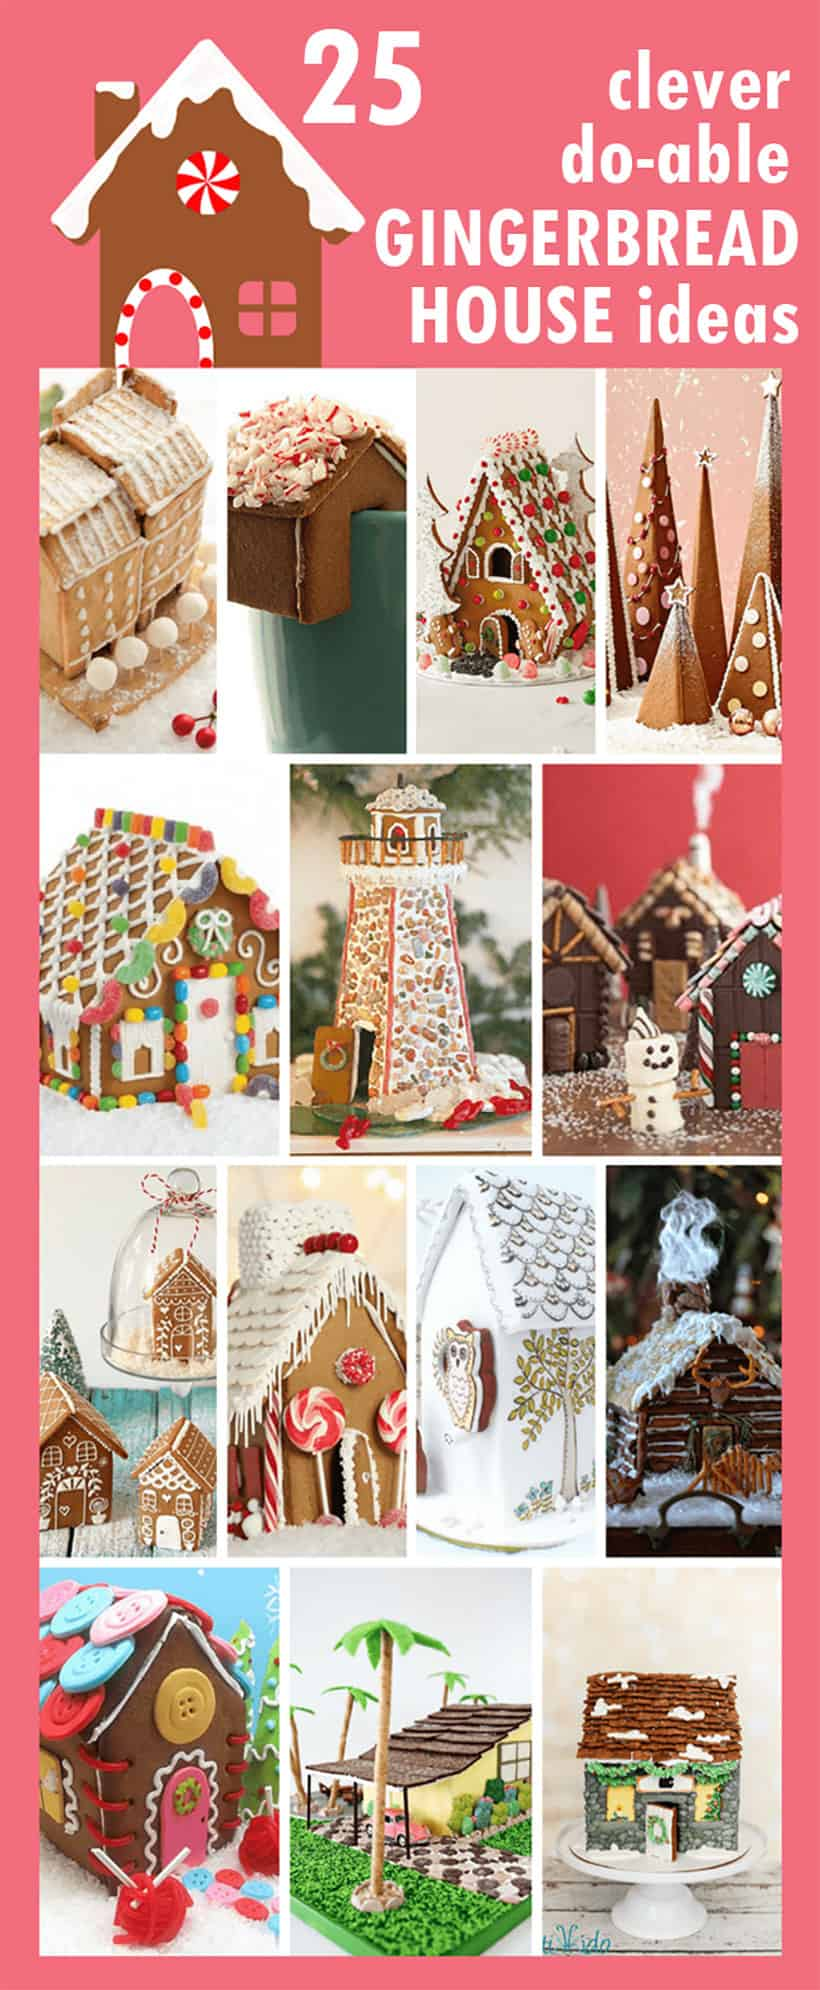 collage of gingerbread house ideas